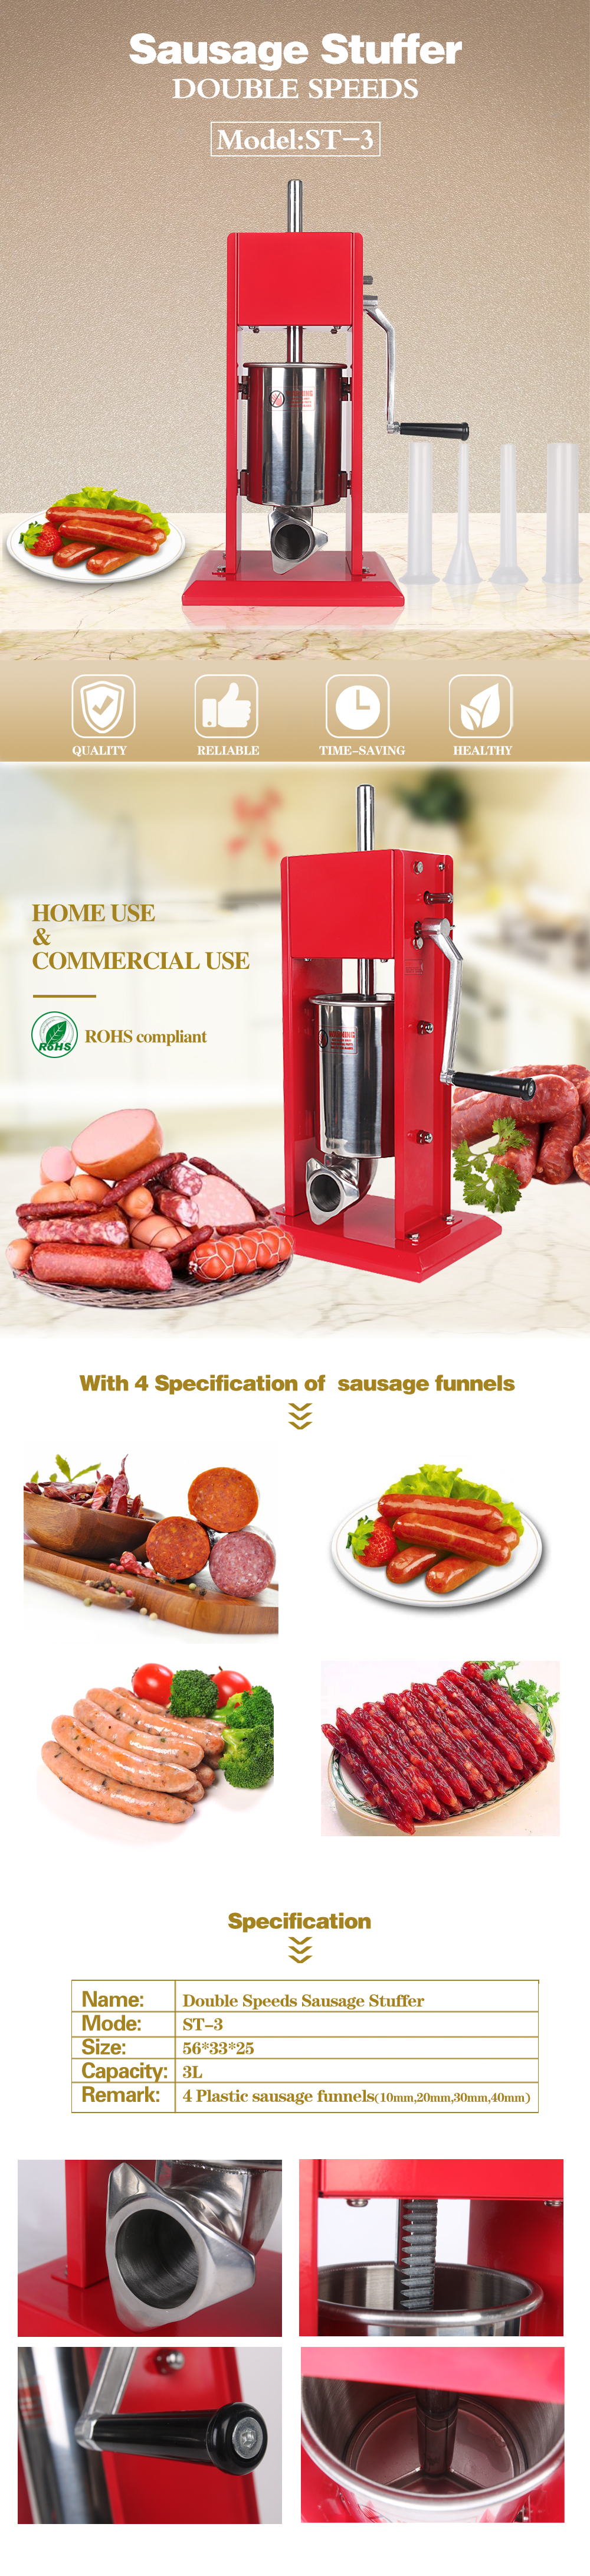 DOITOOL Manual Sausage Maker Sausage Stuffer Meat Filler Hand Operated Salami Maker With 3 Funnels